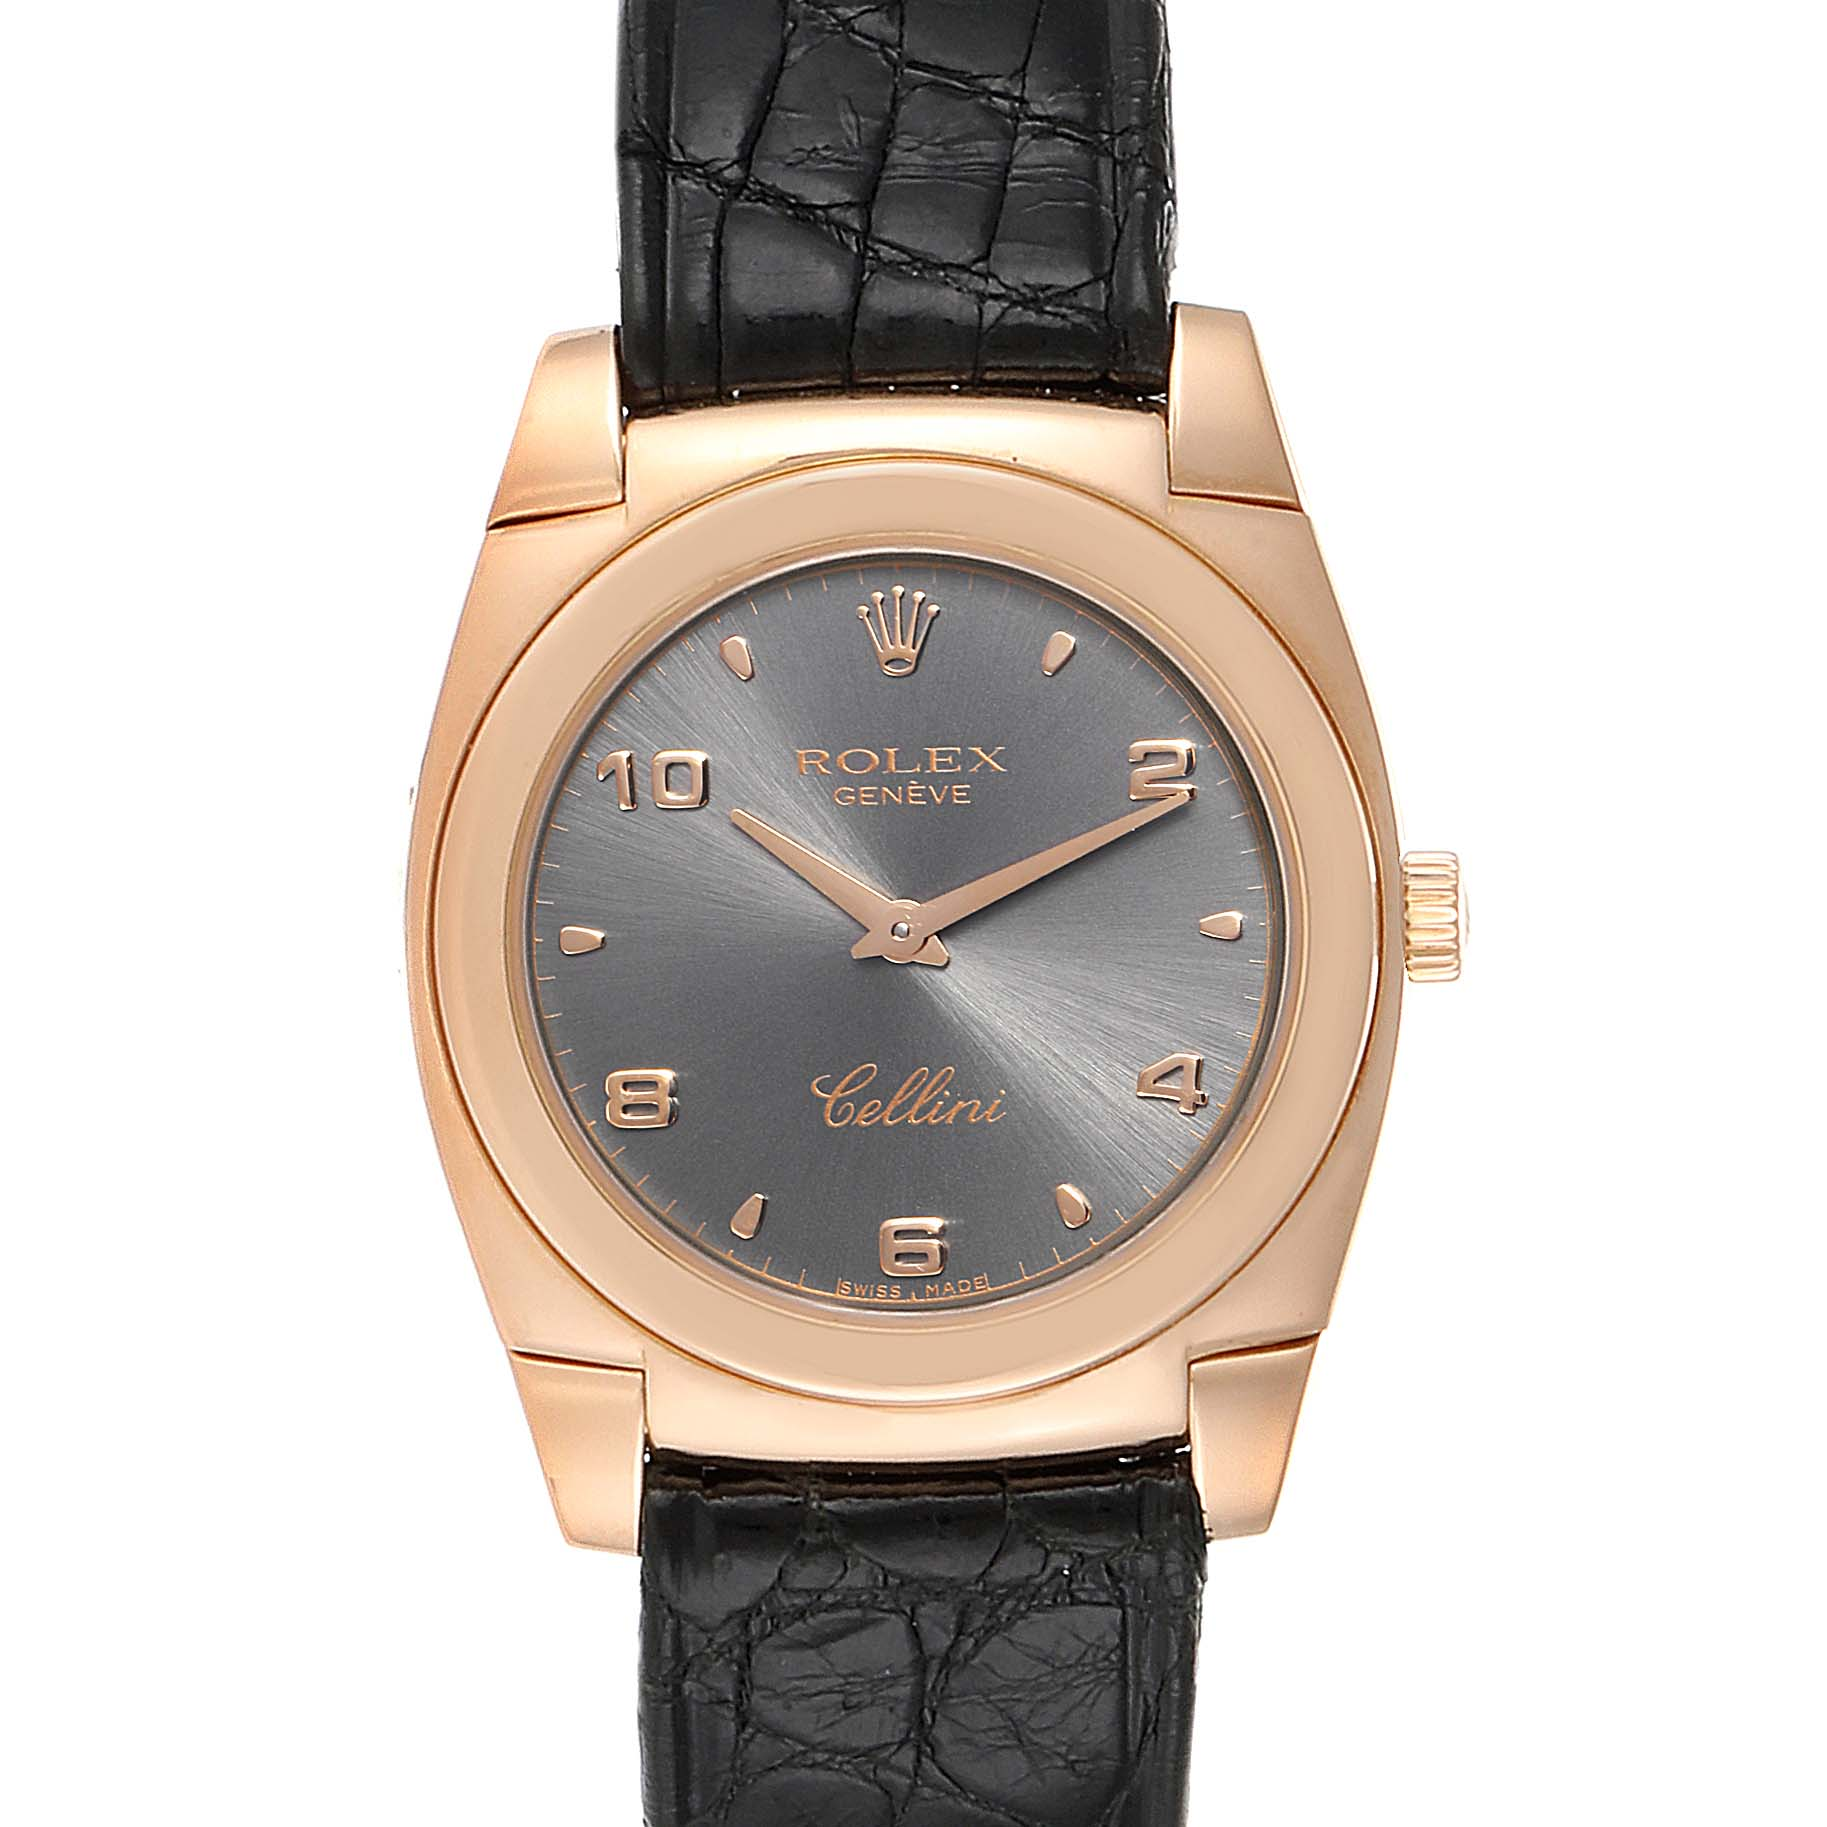 Rolex Cellini Cestello Rose Gold Slate Dial Ladies Watch 5320 Box Papers